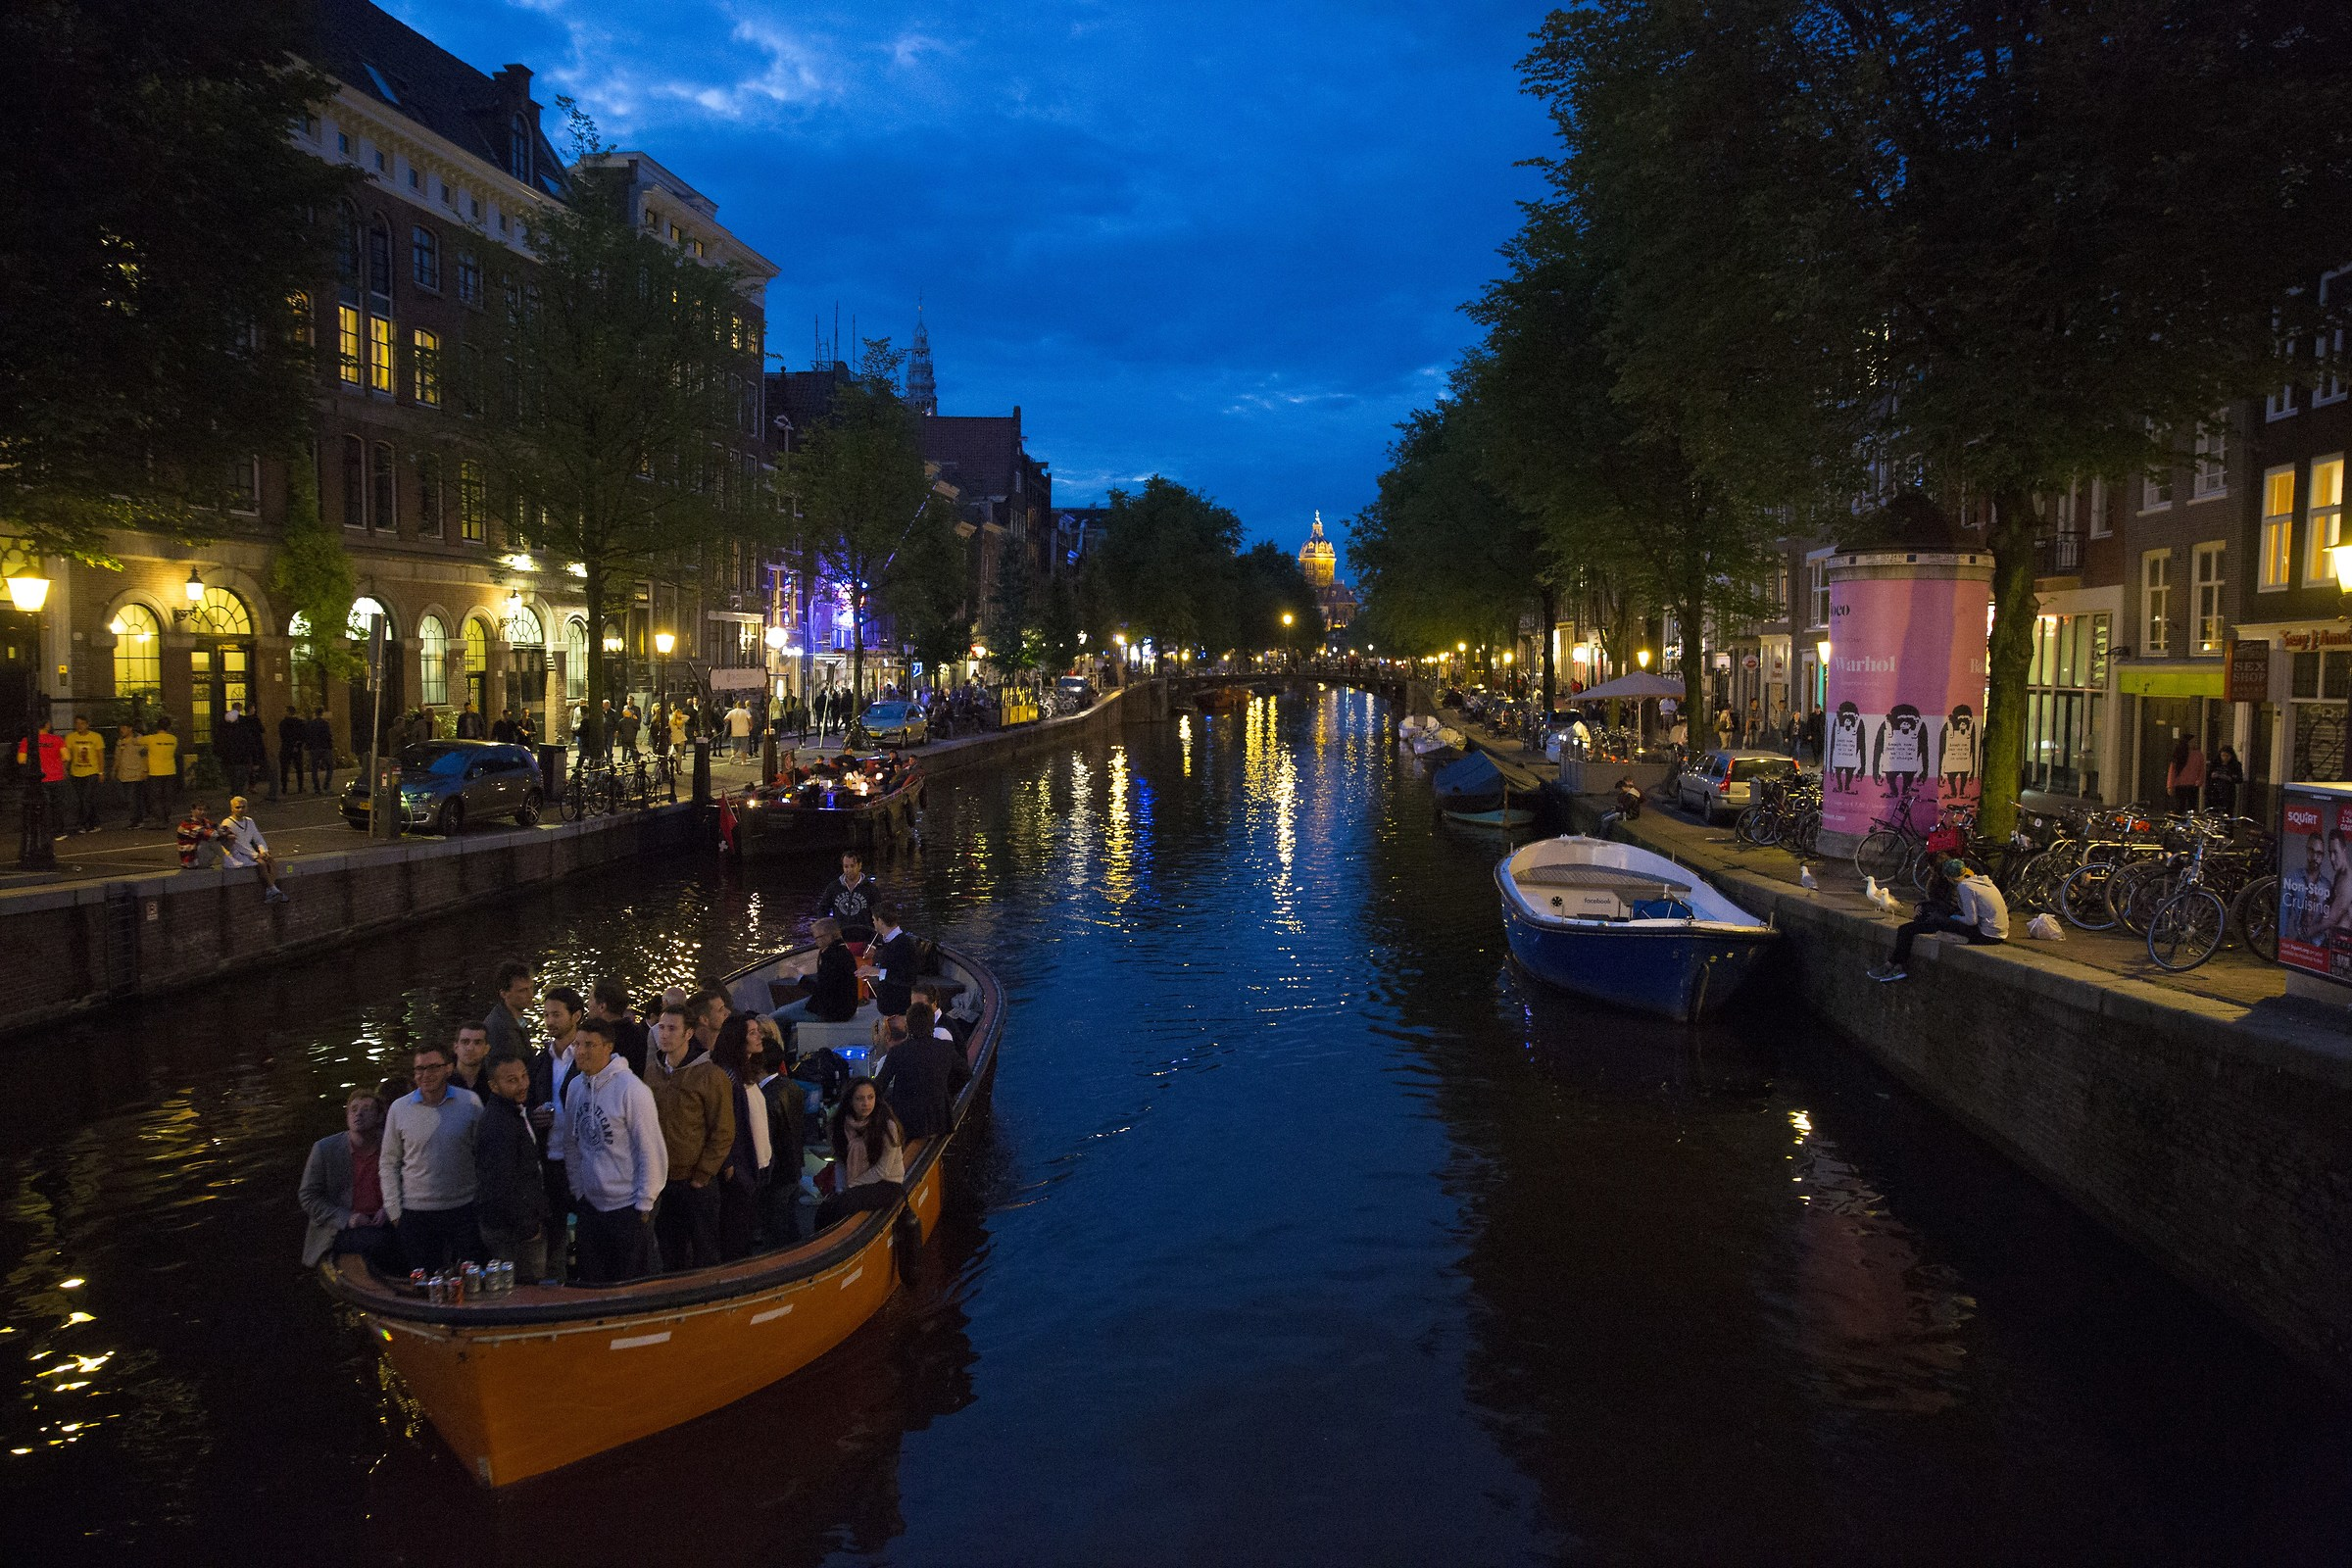 The canals of Amsterdam 7...